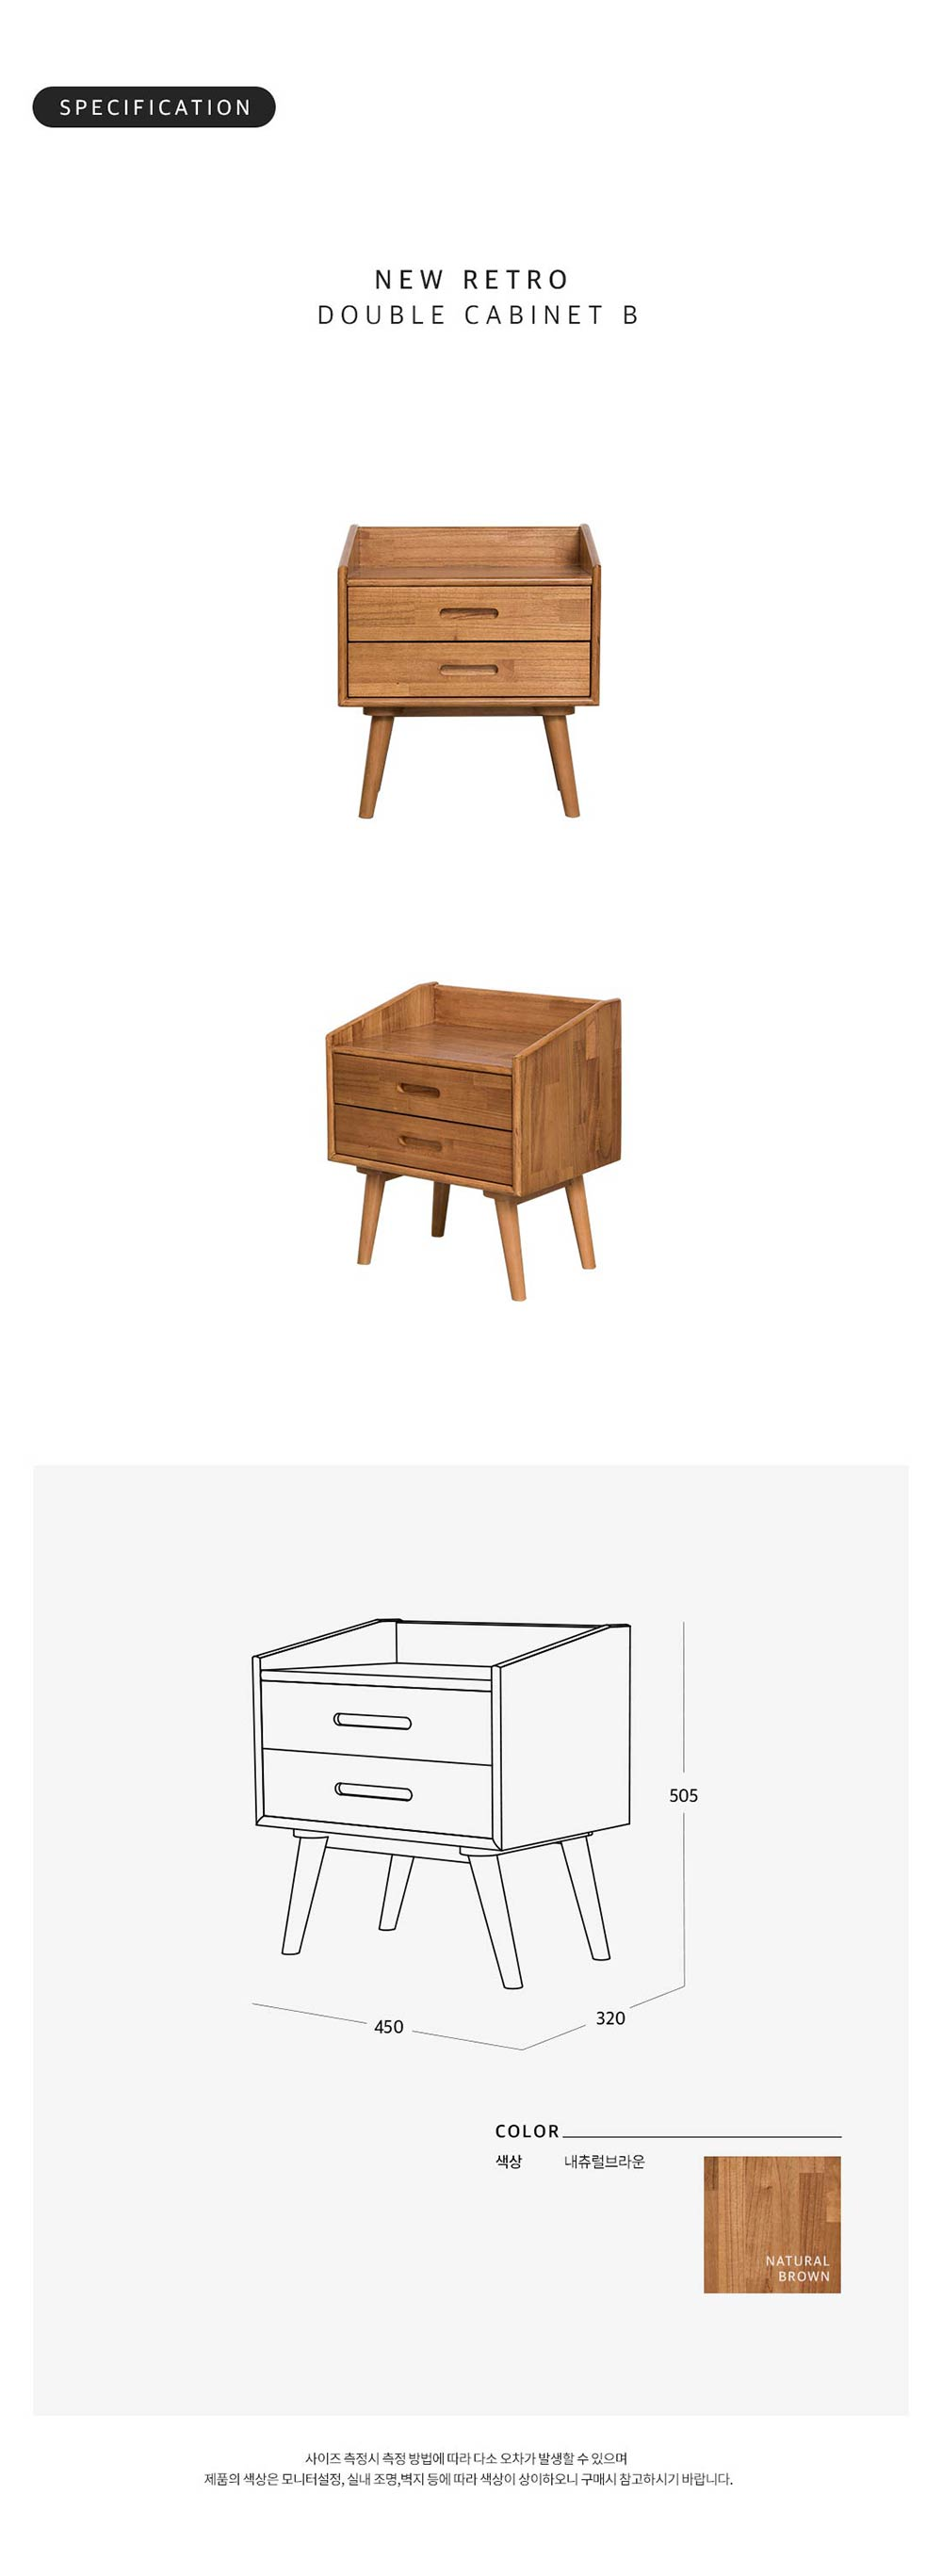 New_Retro_Double_Cabinet_Side_Table_B_Open_Top_Furniture_Online_Singapore_Specifications_by_born_in_colour